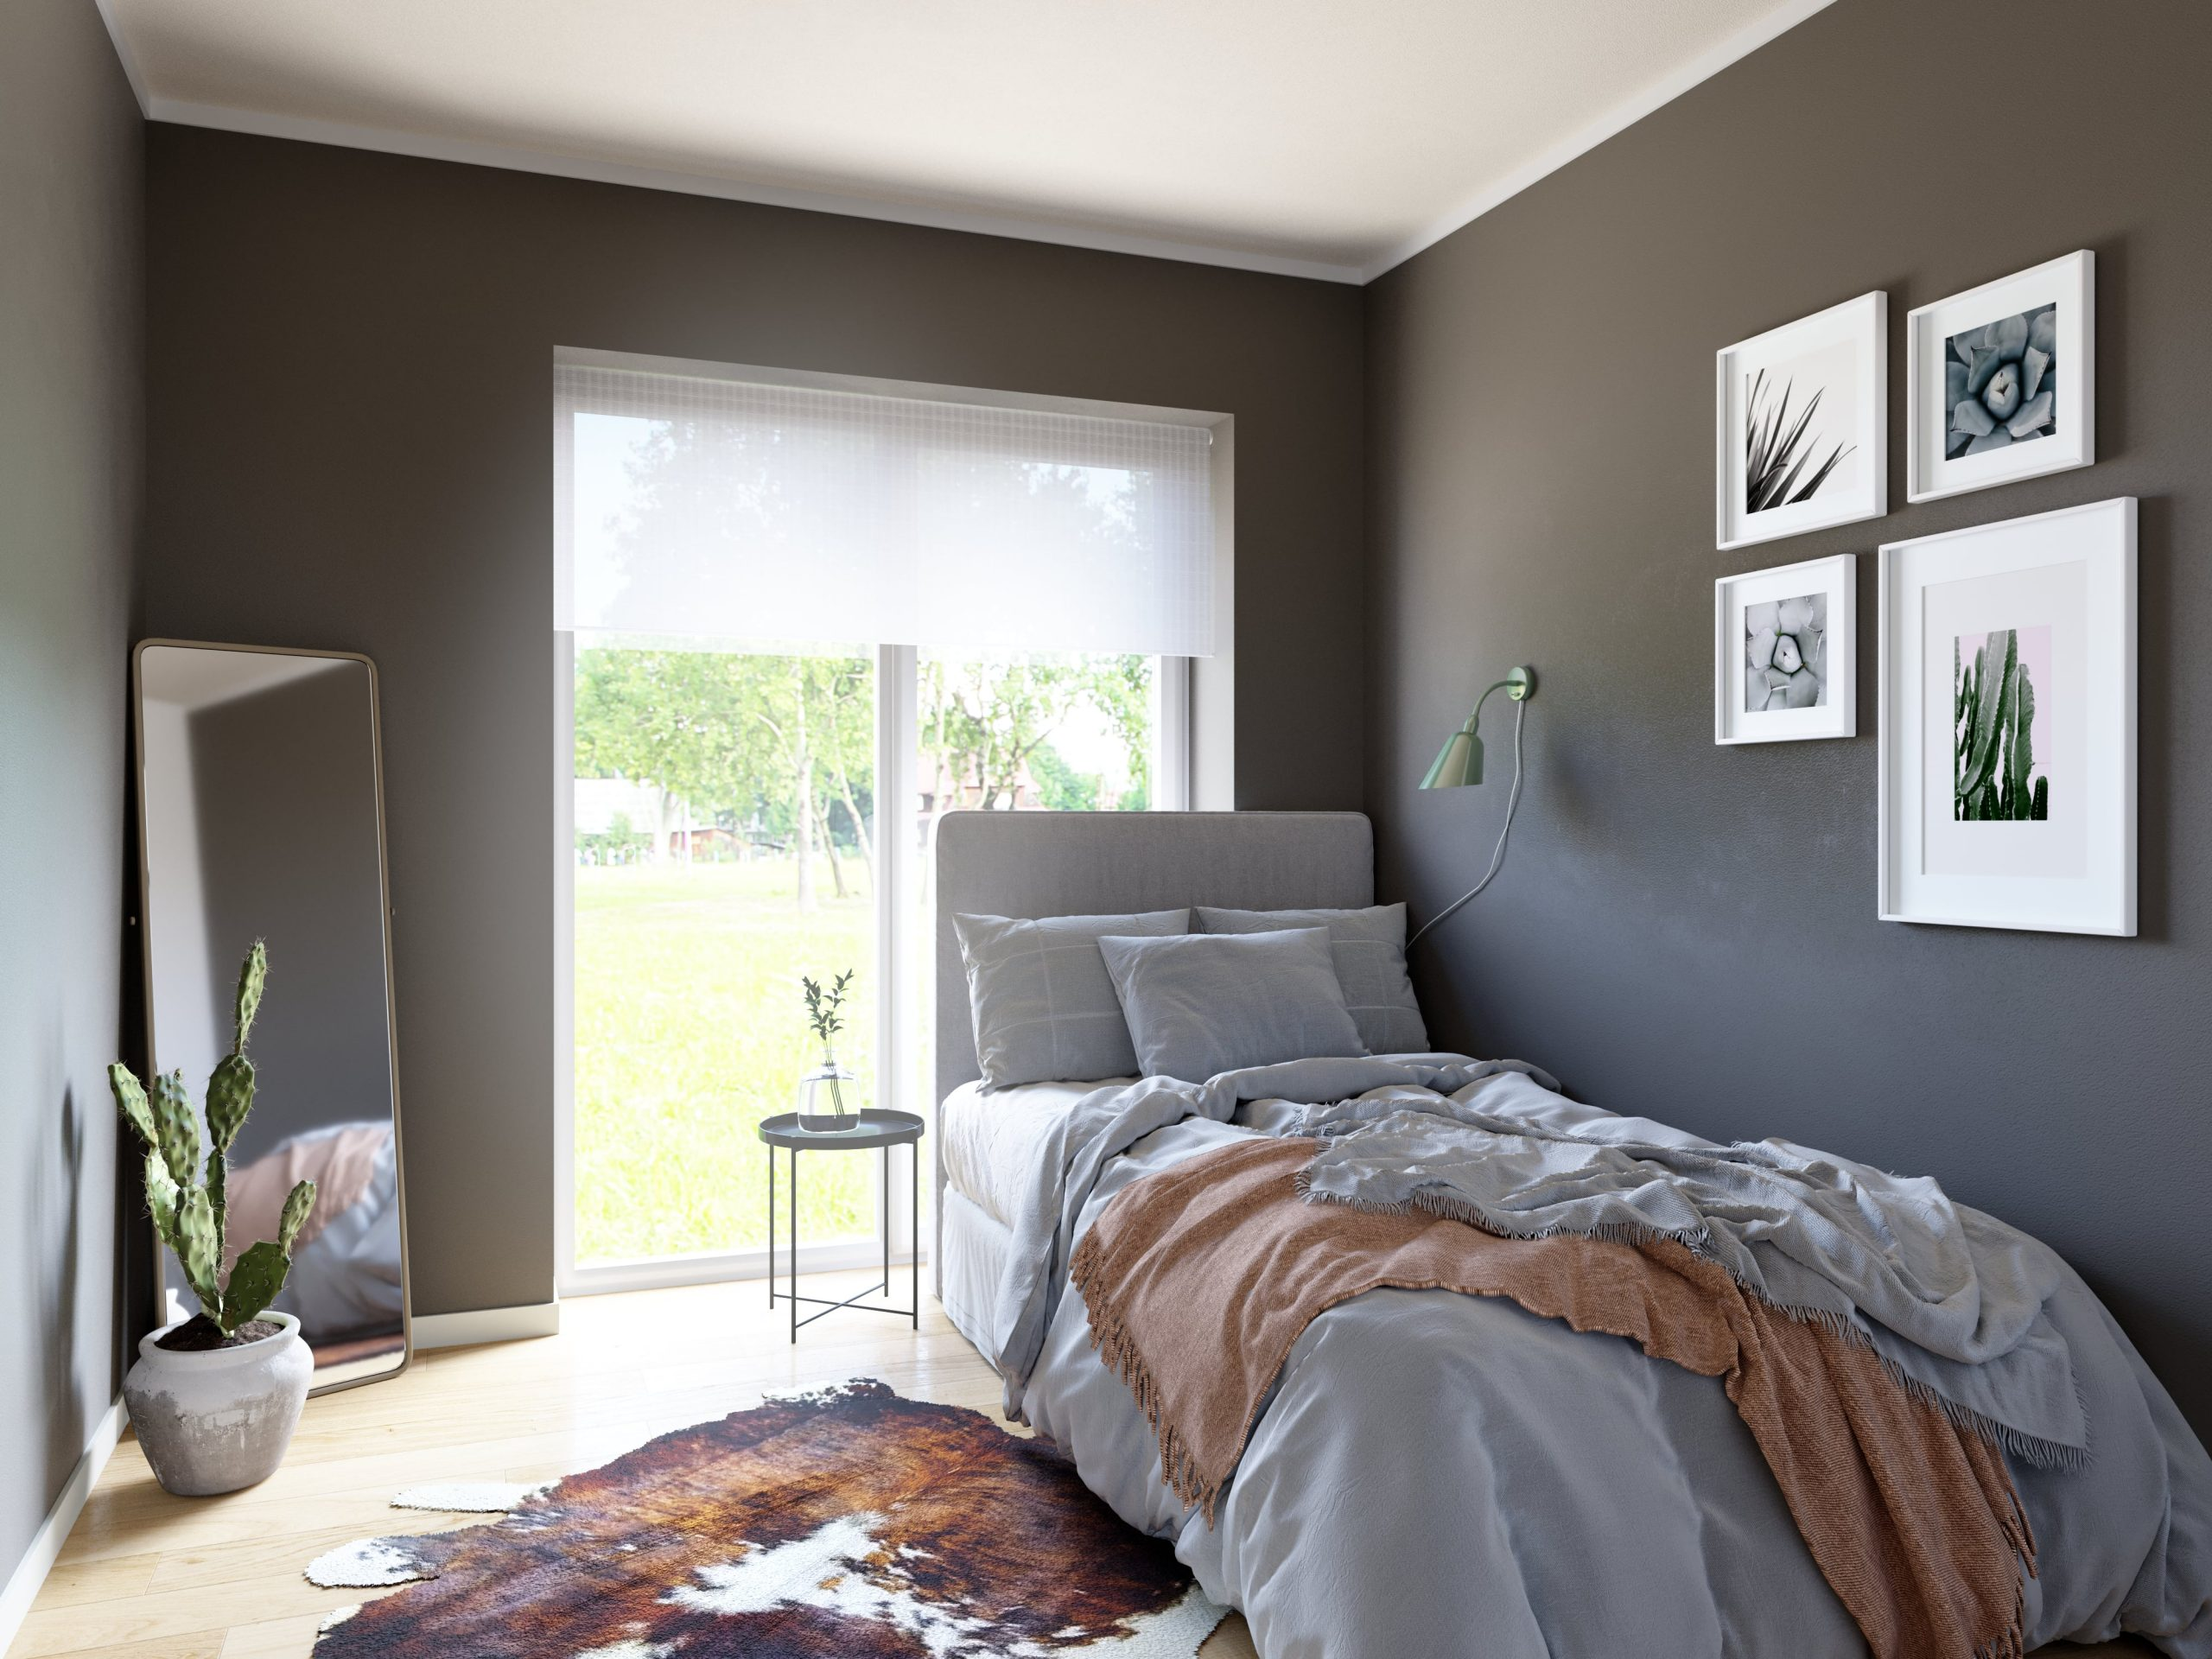 //vpva.pt/wp-content/uploads/2020/03/vpva.pt-3d-render-archviz-architecture-project-desgin-scandinavian-bedroom-outdoor-garden-grey-scaled.jpg